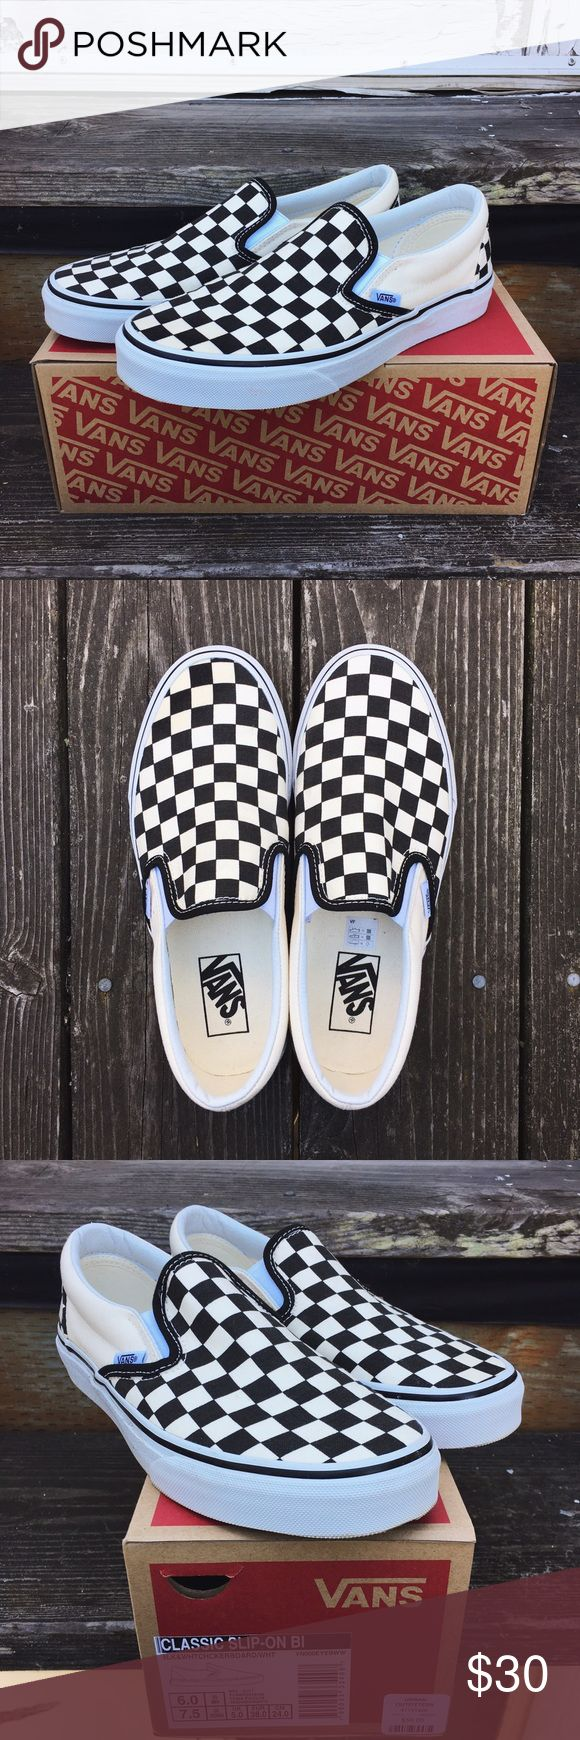 Checkered Slip On Vans Vans slip on shoes in the checkered pattern. Women's size 7.5 and men's size 6. Pretty good condition! Only worn 2x, no major damage to soles and only slightly dirty. Also box is available. If purchasing, please comment if you want the box otherwise it will be sent without it. Vans Shoes Sneakers